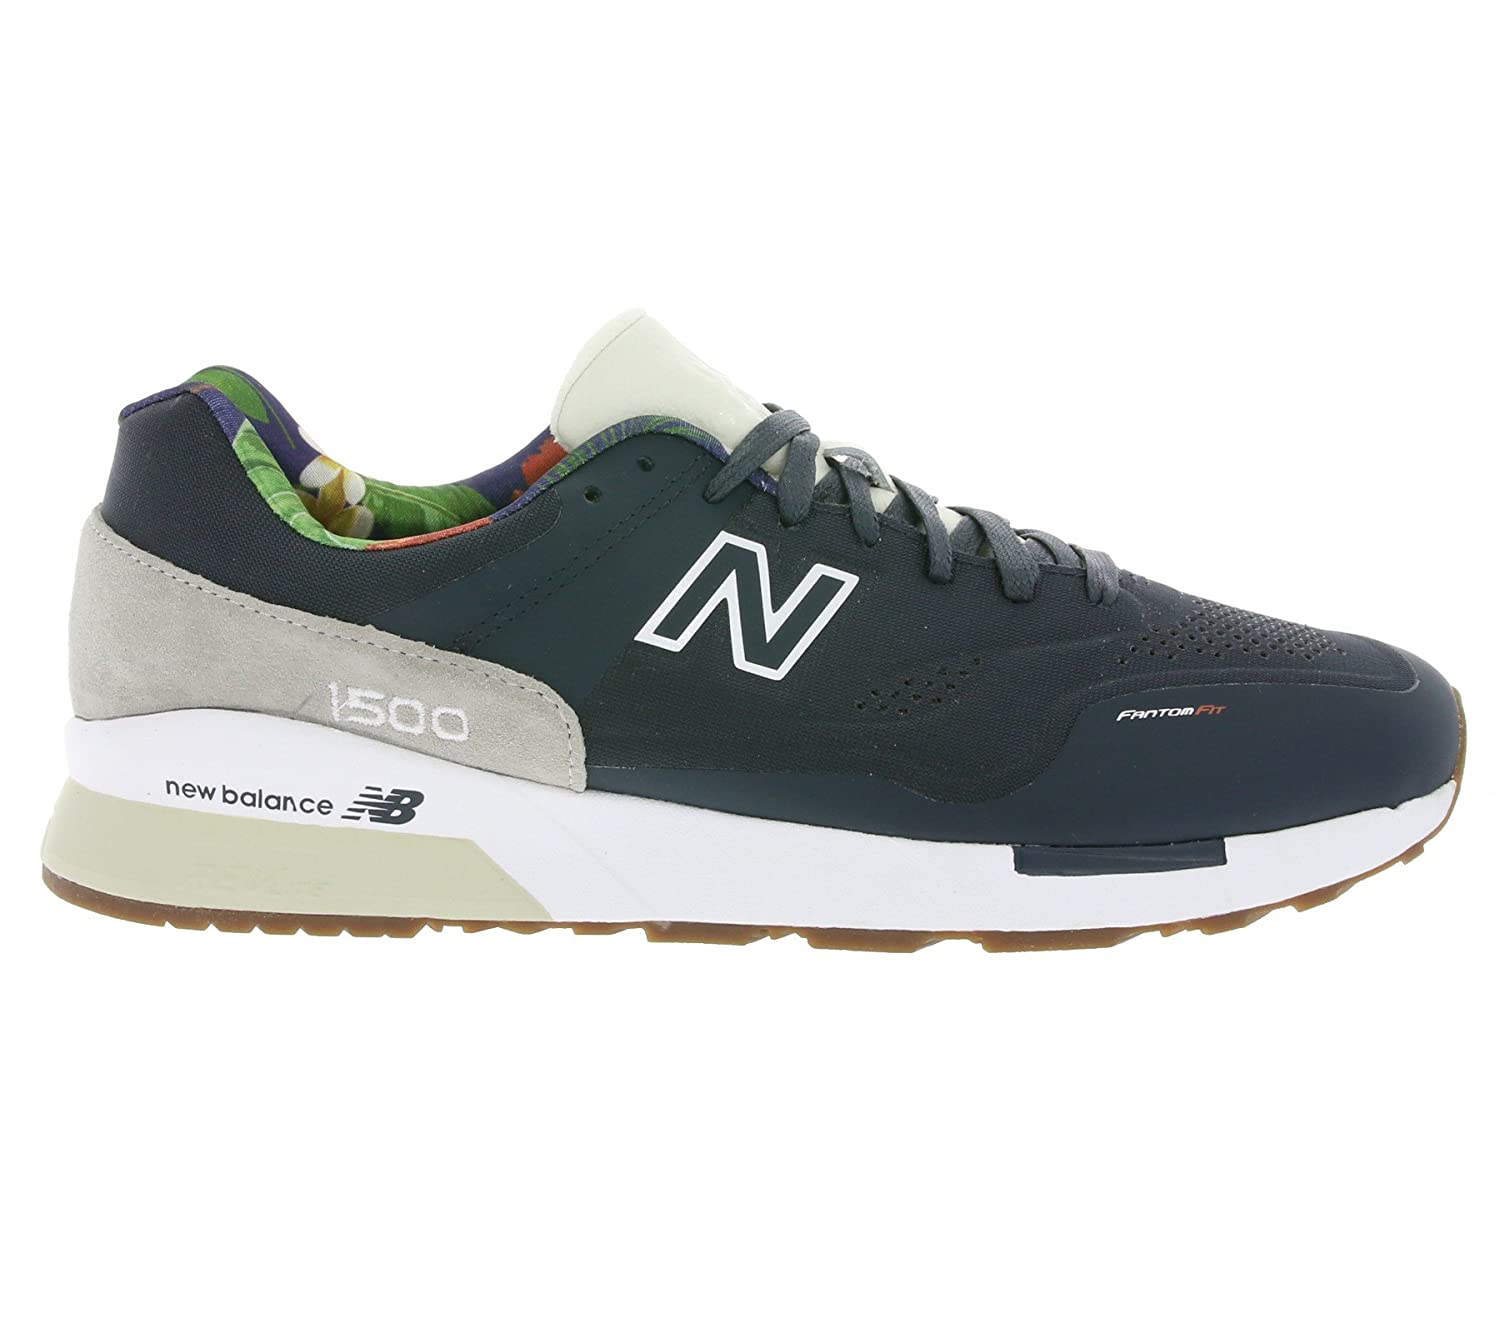 new balance 1500 reengineered herren sneaker blau md1500fj